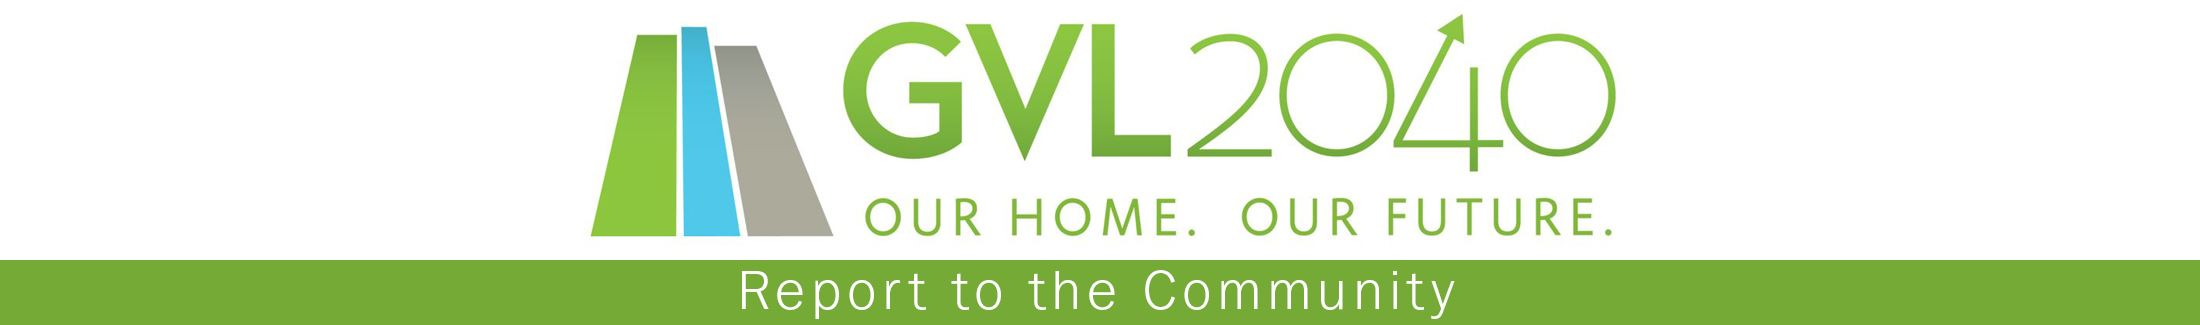 GLV-2040 logo and text: Report to the Community